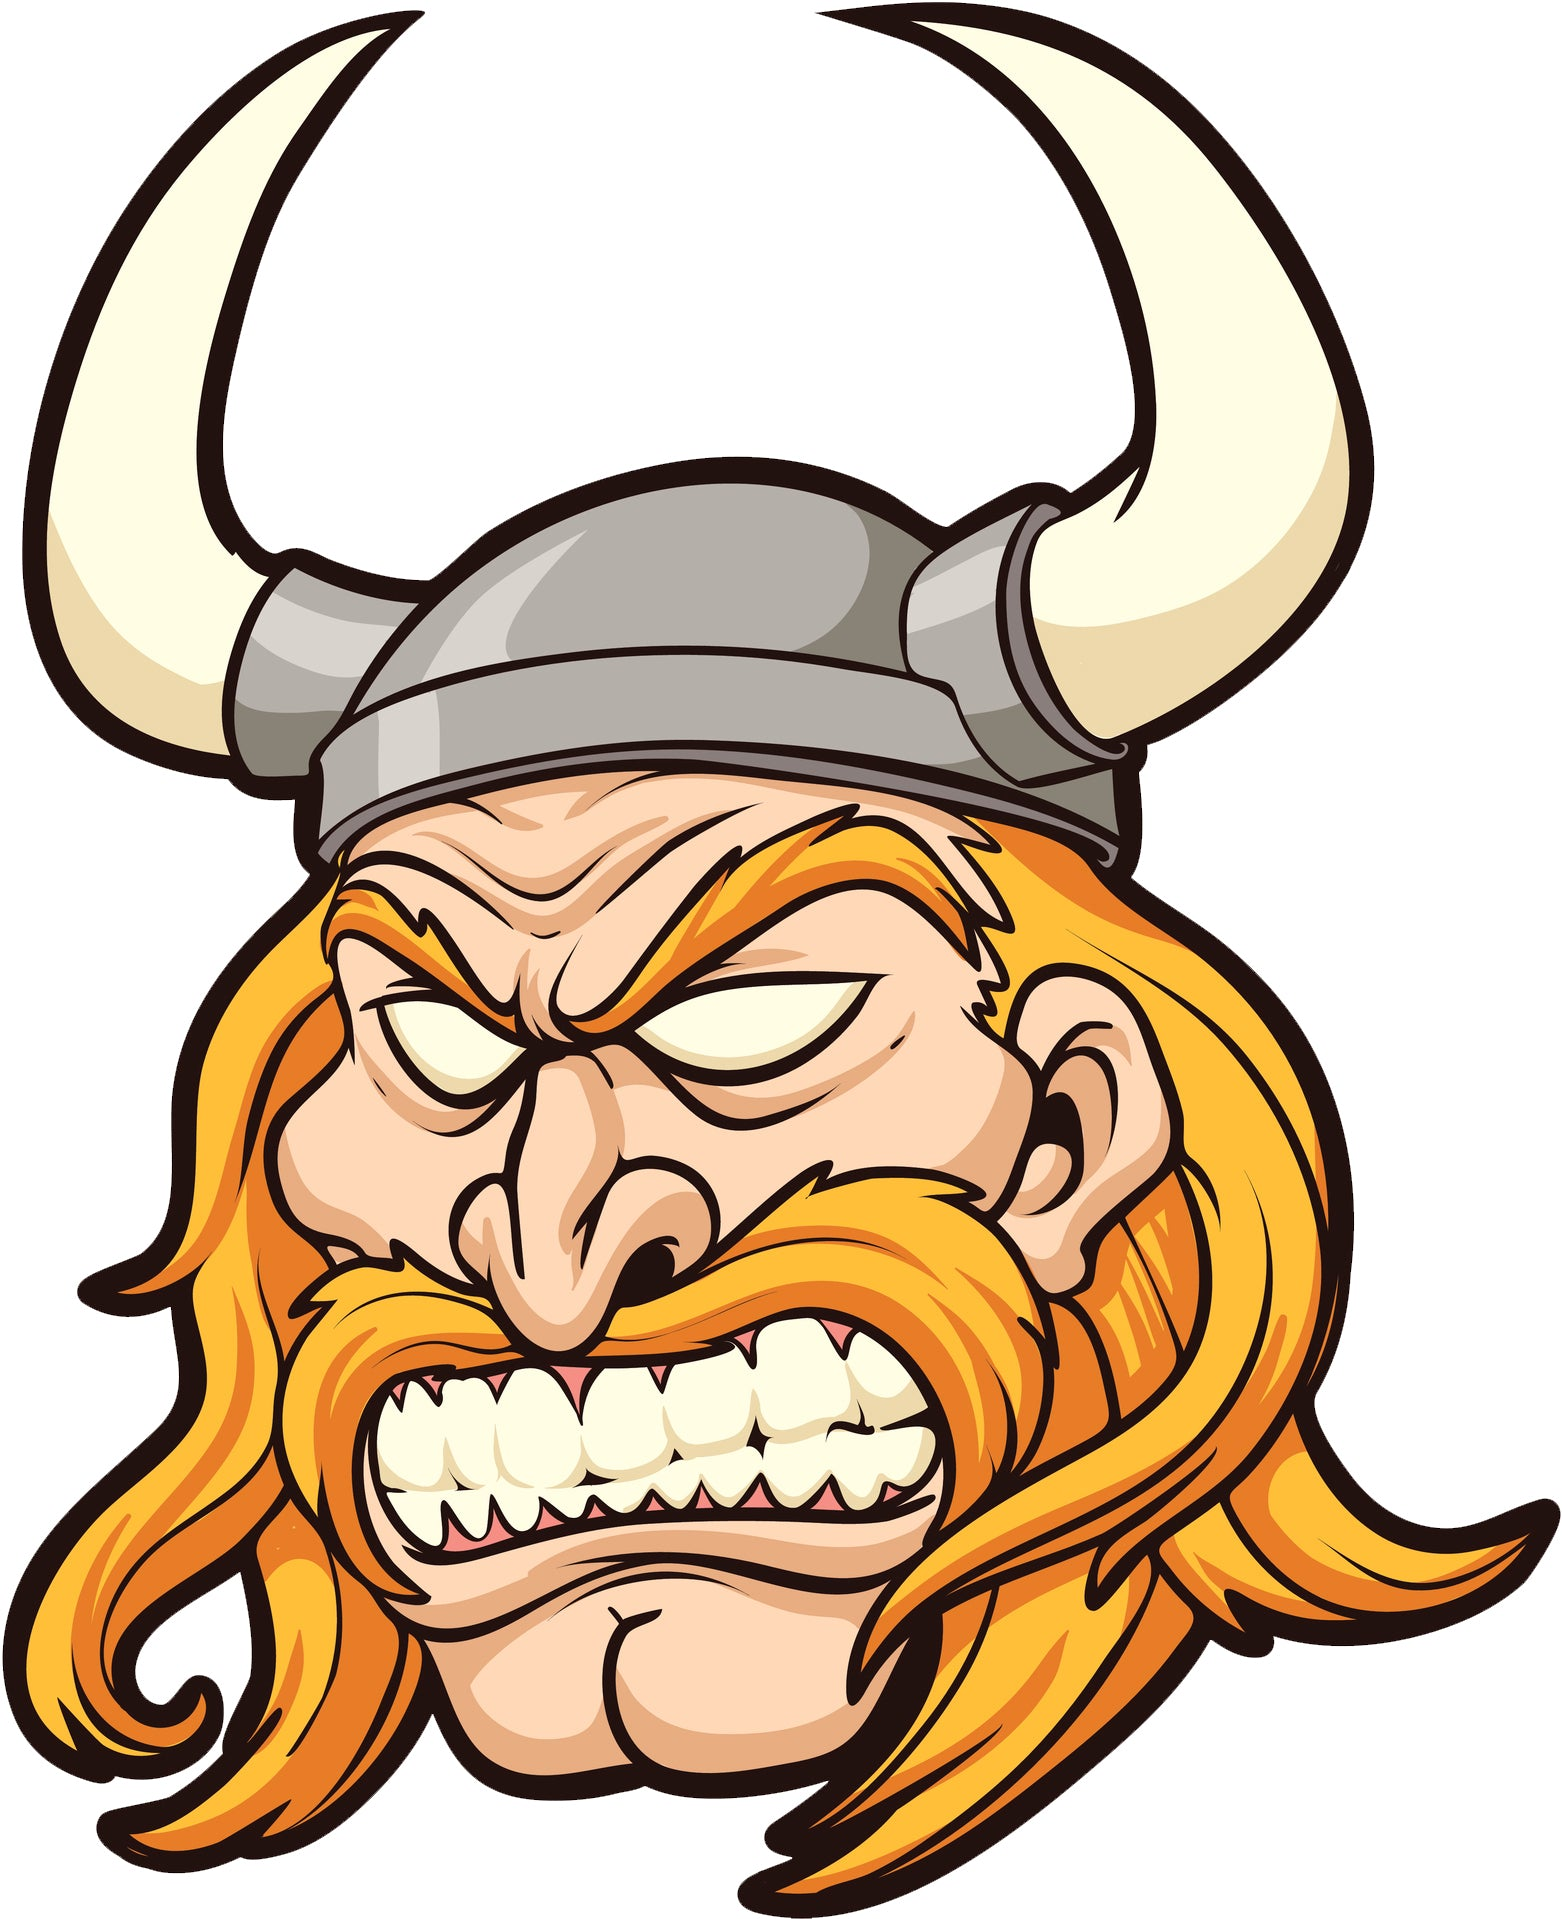 Creepy Angry Blonde Viking Soldier Cartoon Vinyl Decal Sticker